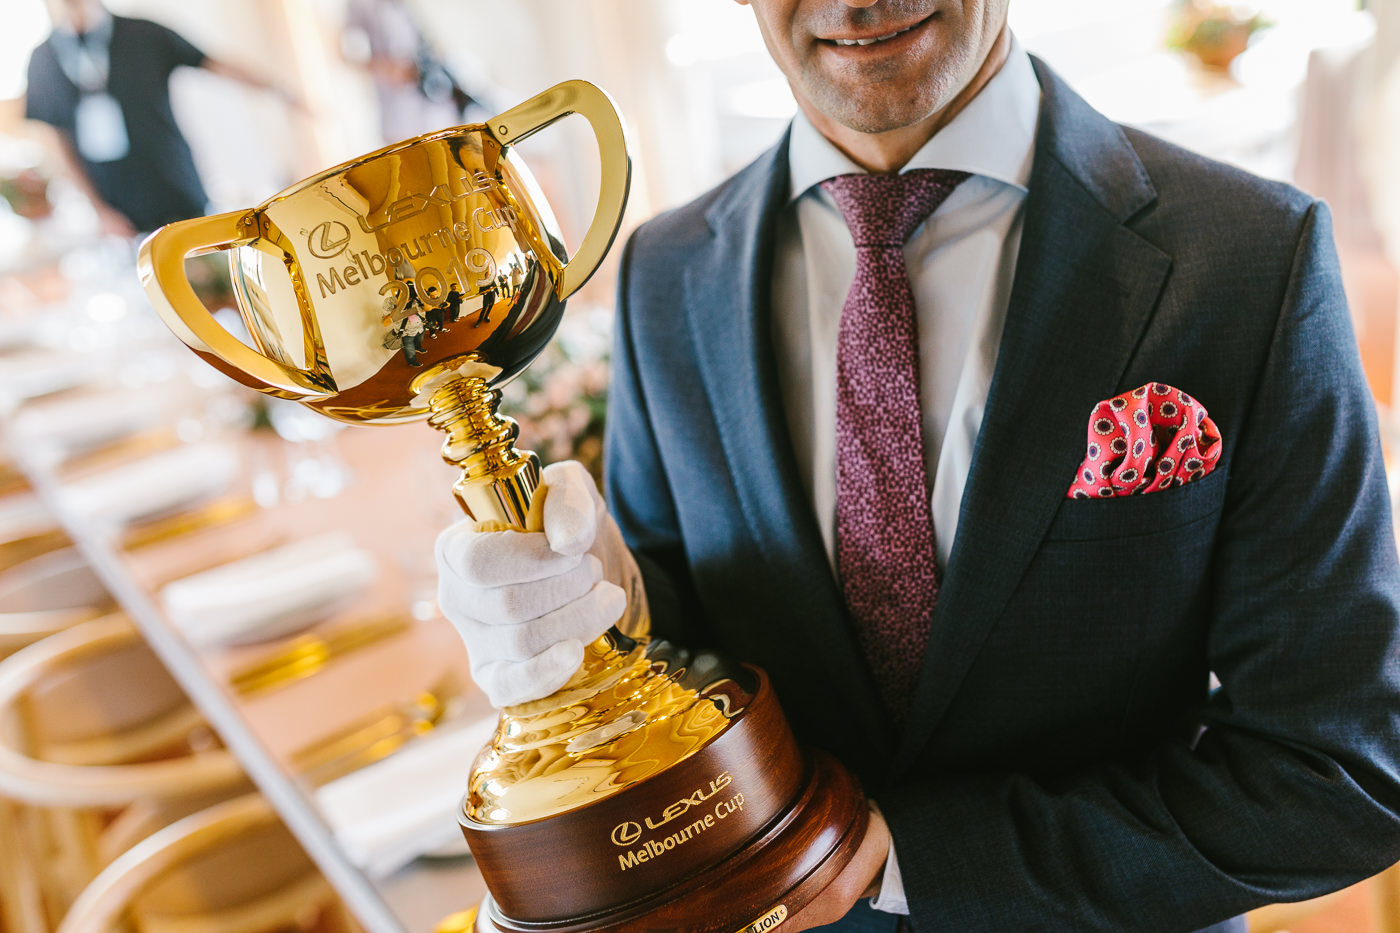 Melbourne Cup 2019 presented